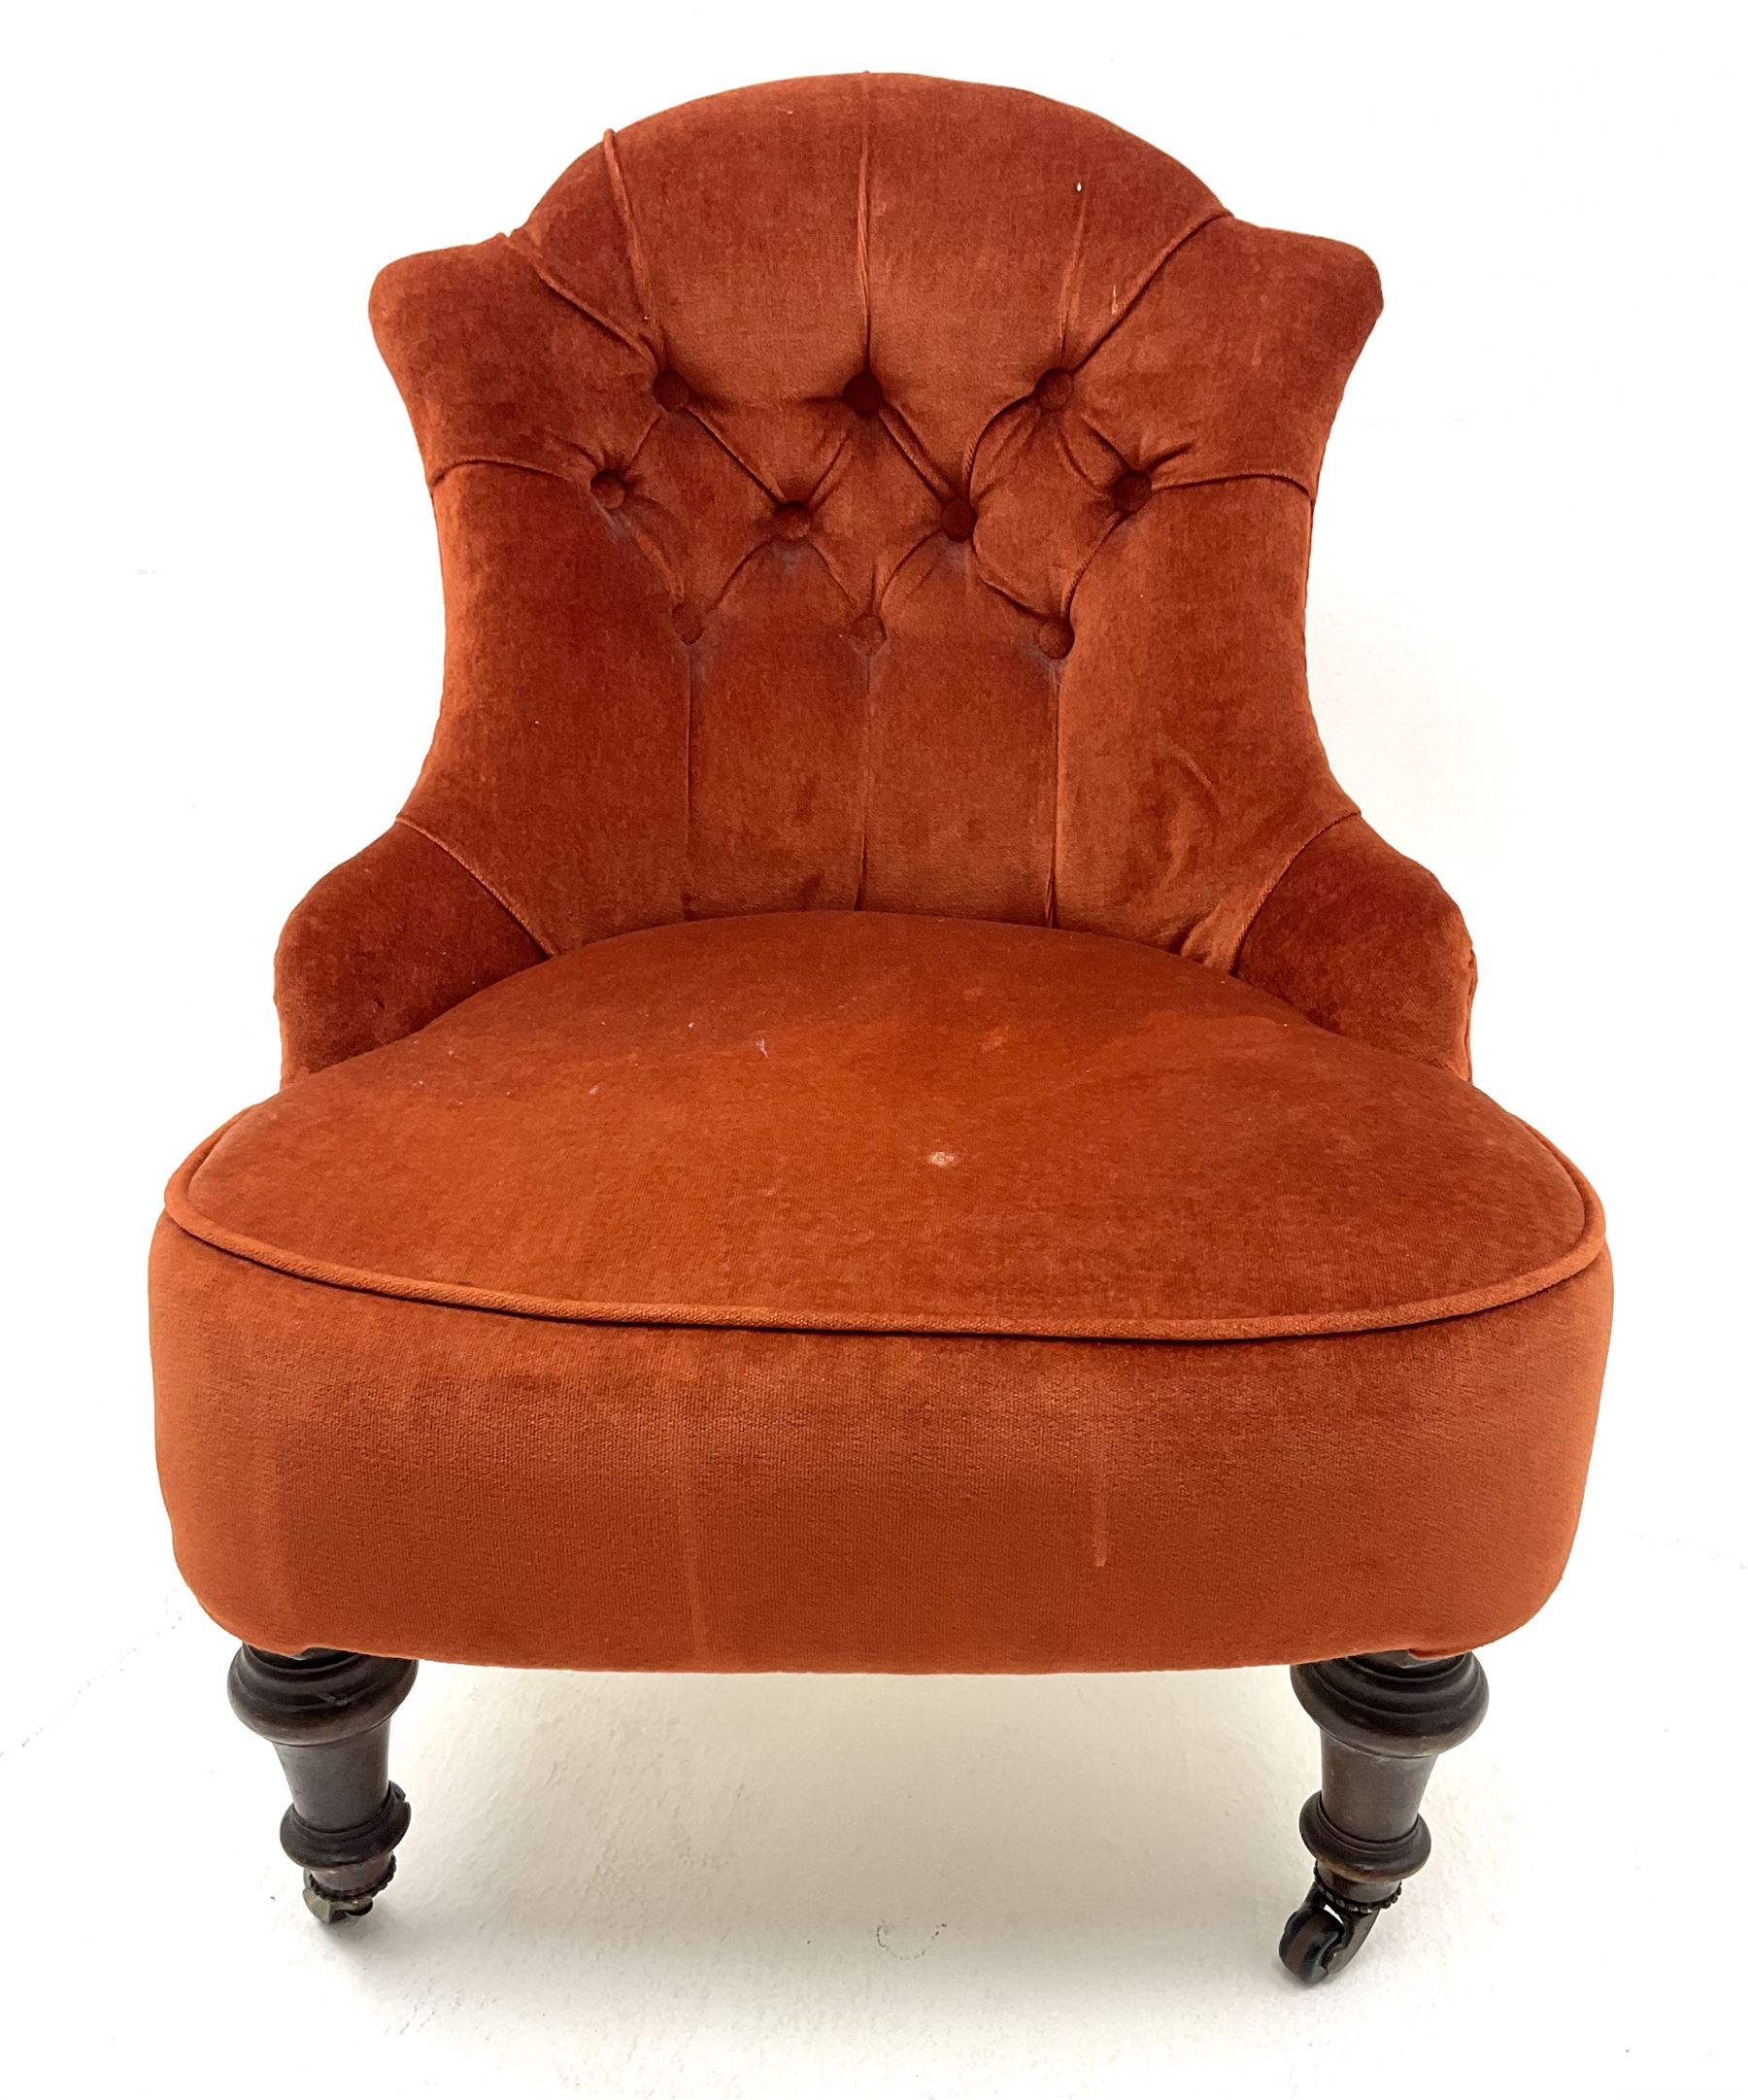 Victorian nursing chair upholstered in a buttoned terracotta fabric